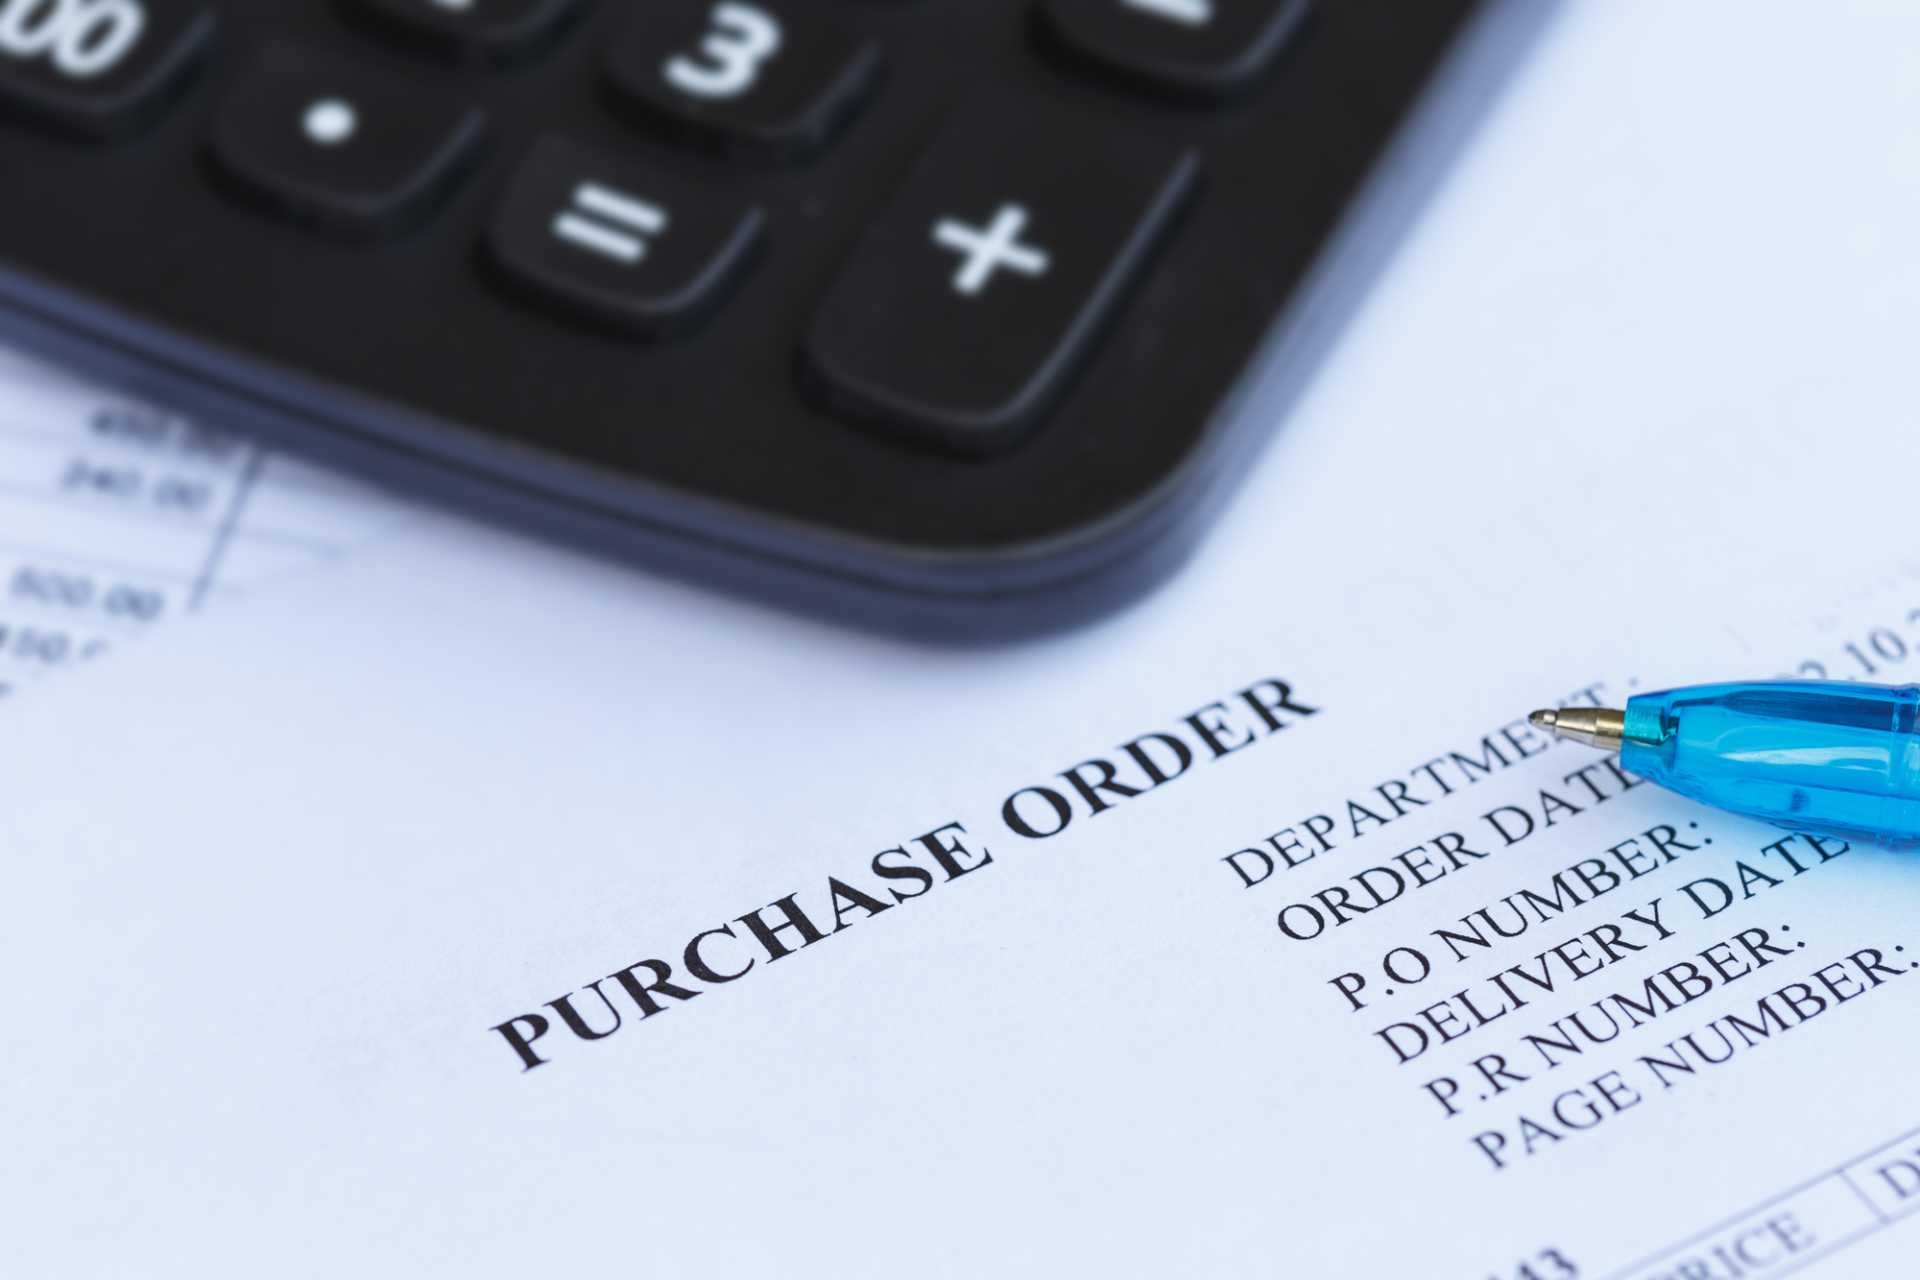 Purchase order with pen procurement supply chain finance supplier - image courtesy of Depositphotos.